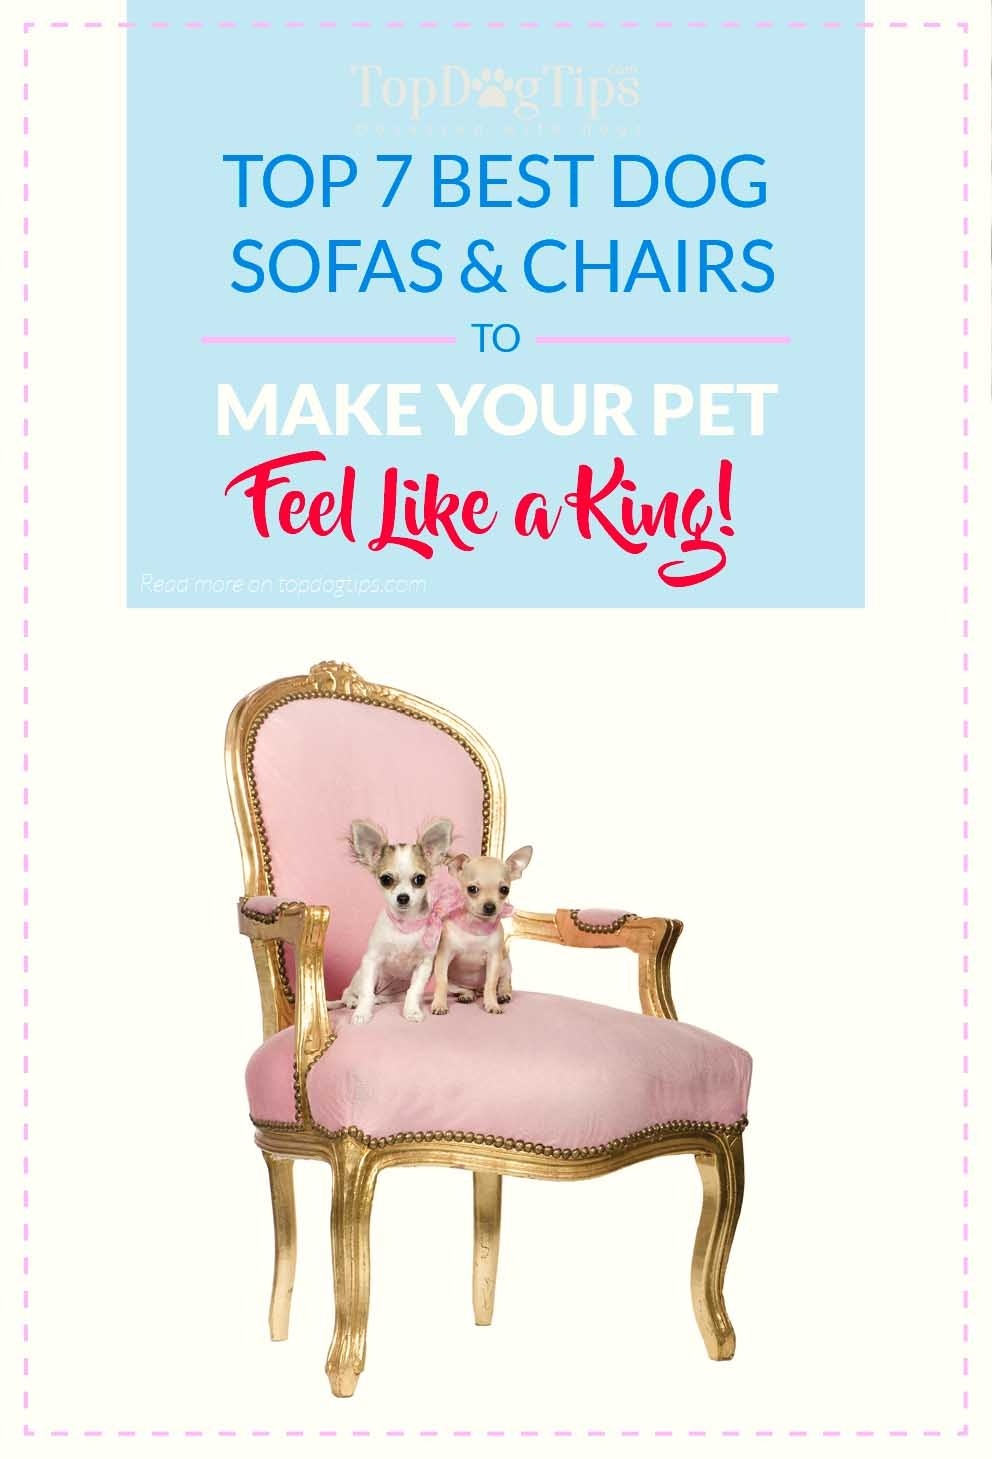 Top 7 Best Dog Sofas And Chairs For Stylish Home Decor In 2017 Throughout Dog Sofas And Chairs (Image 15 of 15)